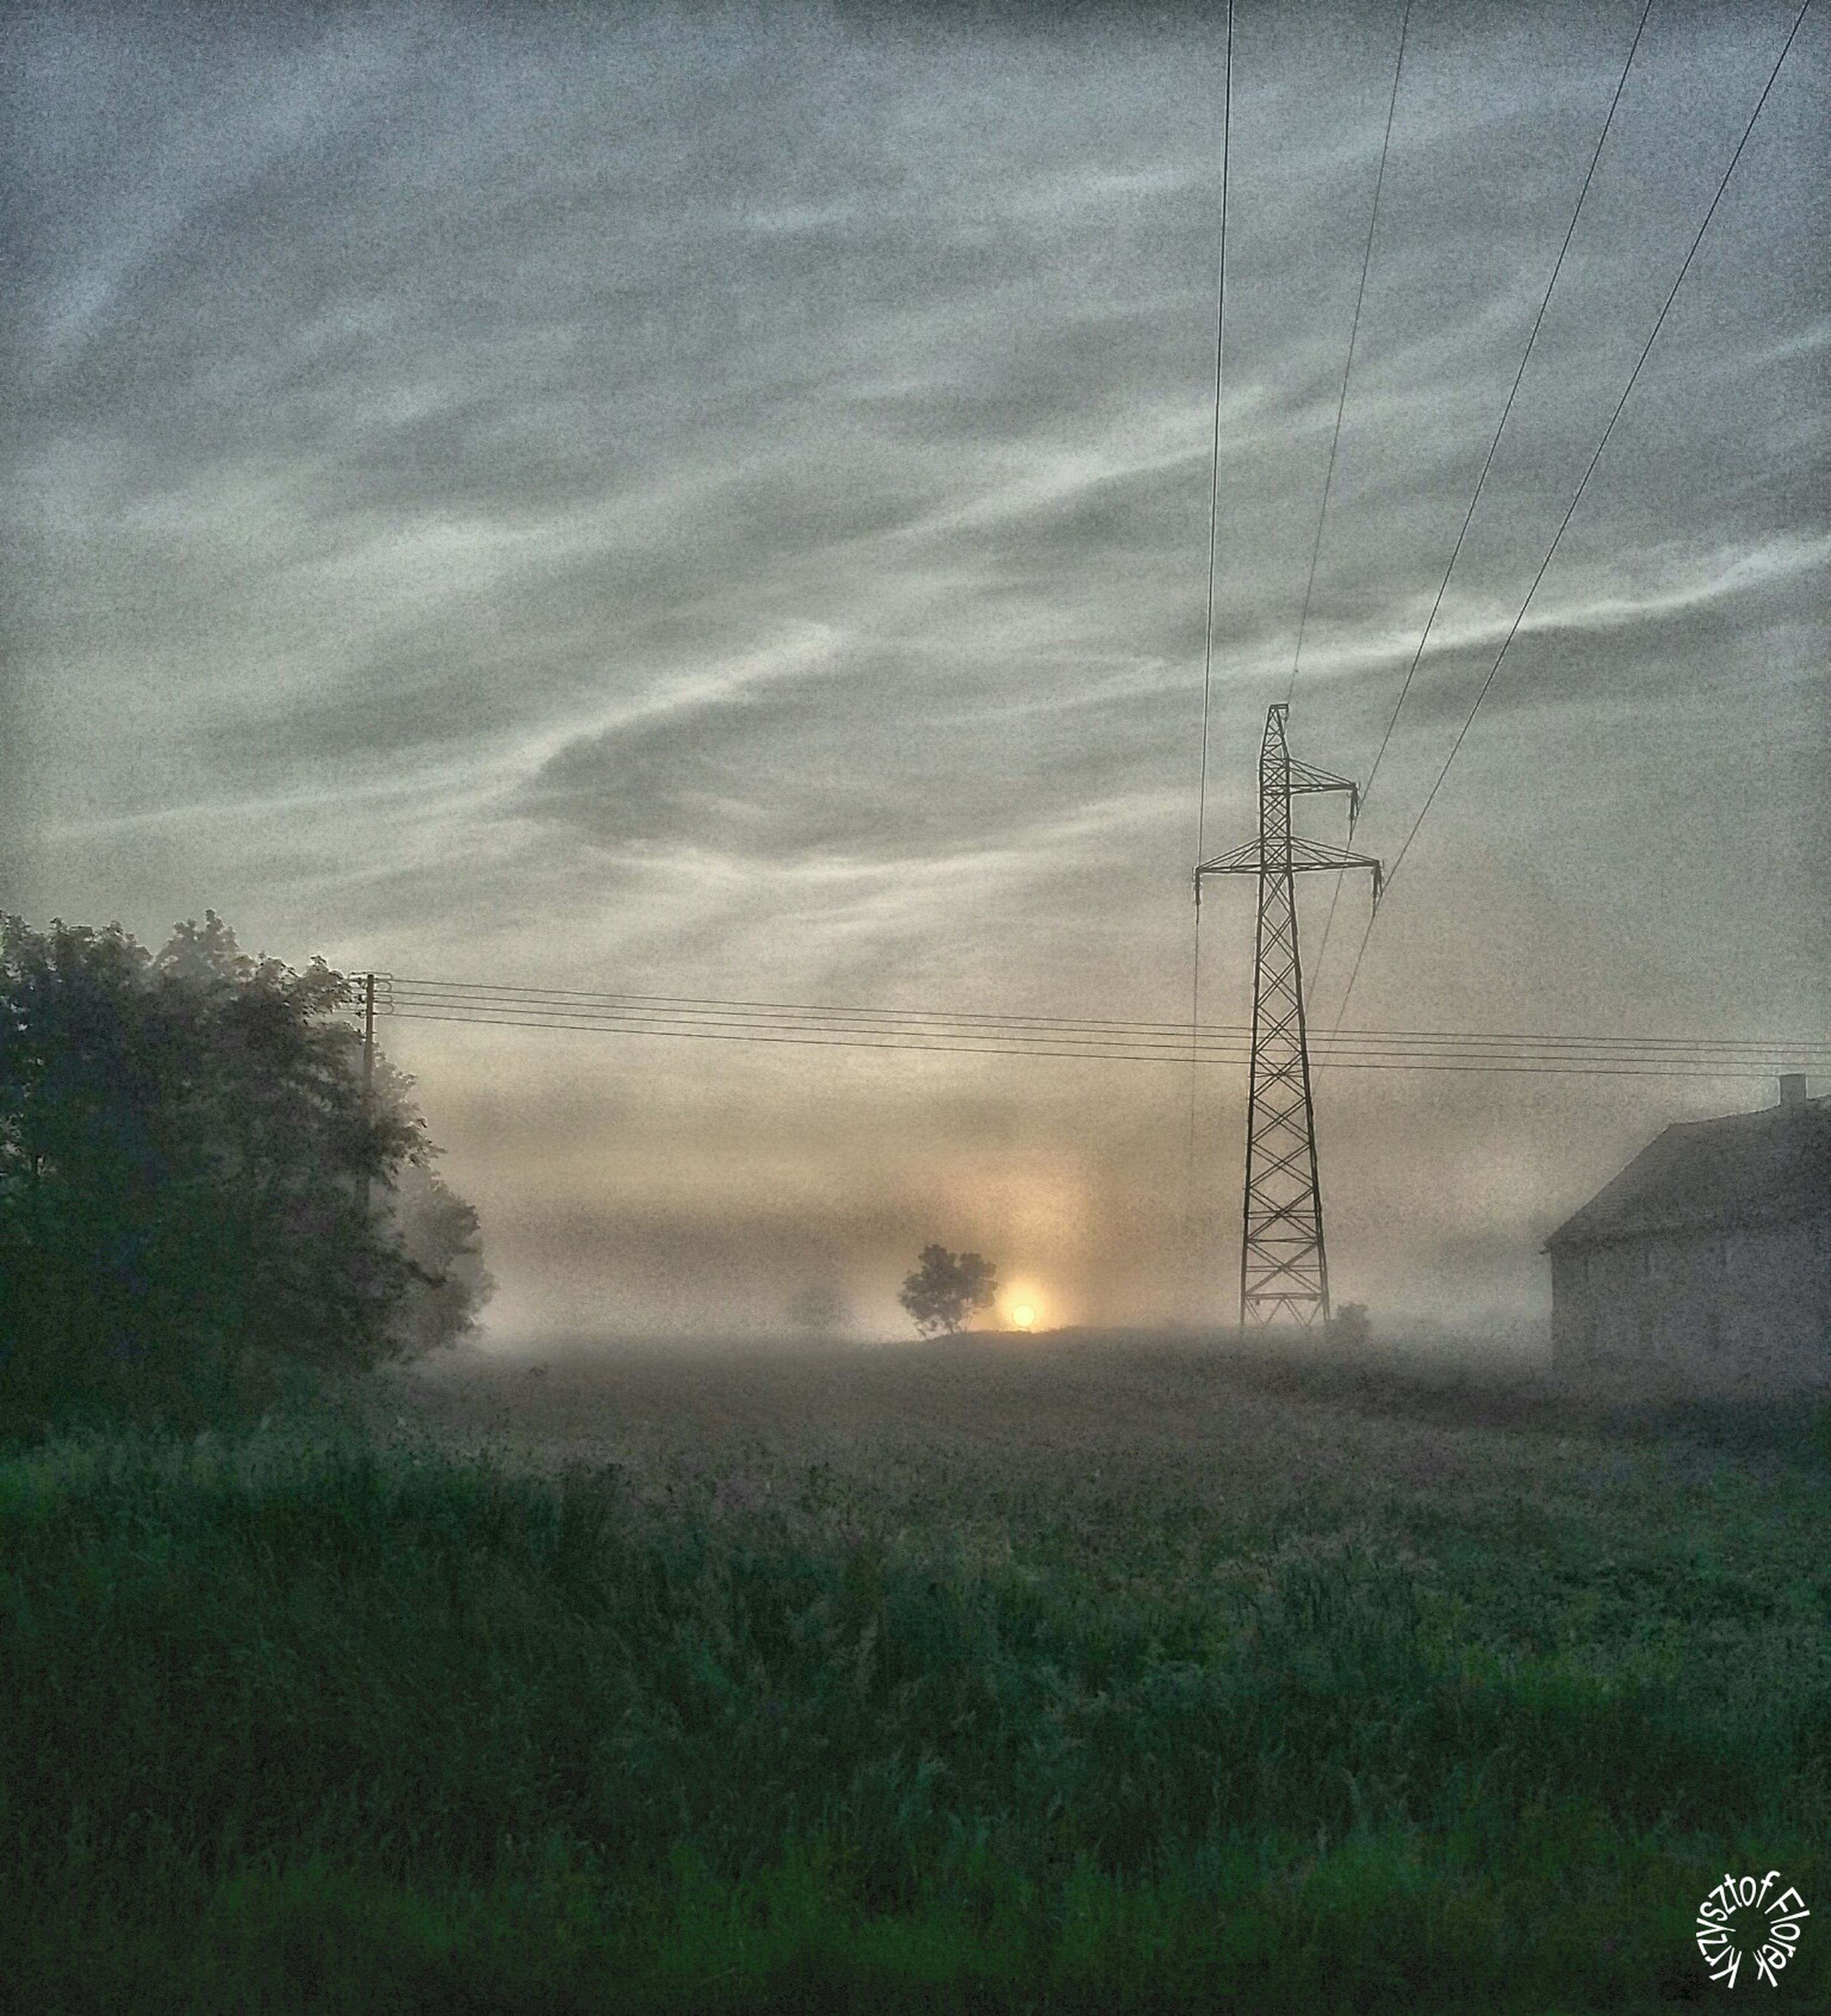 power line, electricity pylon, electricity, field, sky, tranquility, tranquil scene, power supply, grass, nature, landscape, beauty in nature, scenics, tree, growth, fuel and power generation, cable, cloud - sky, plant, weather